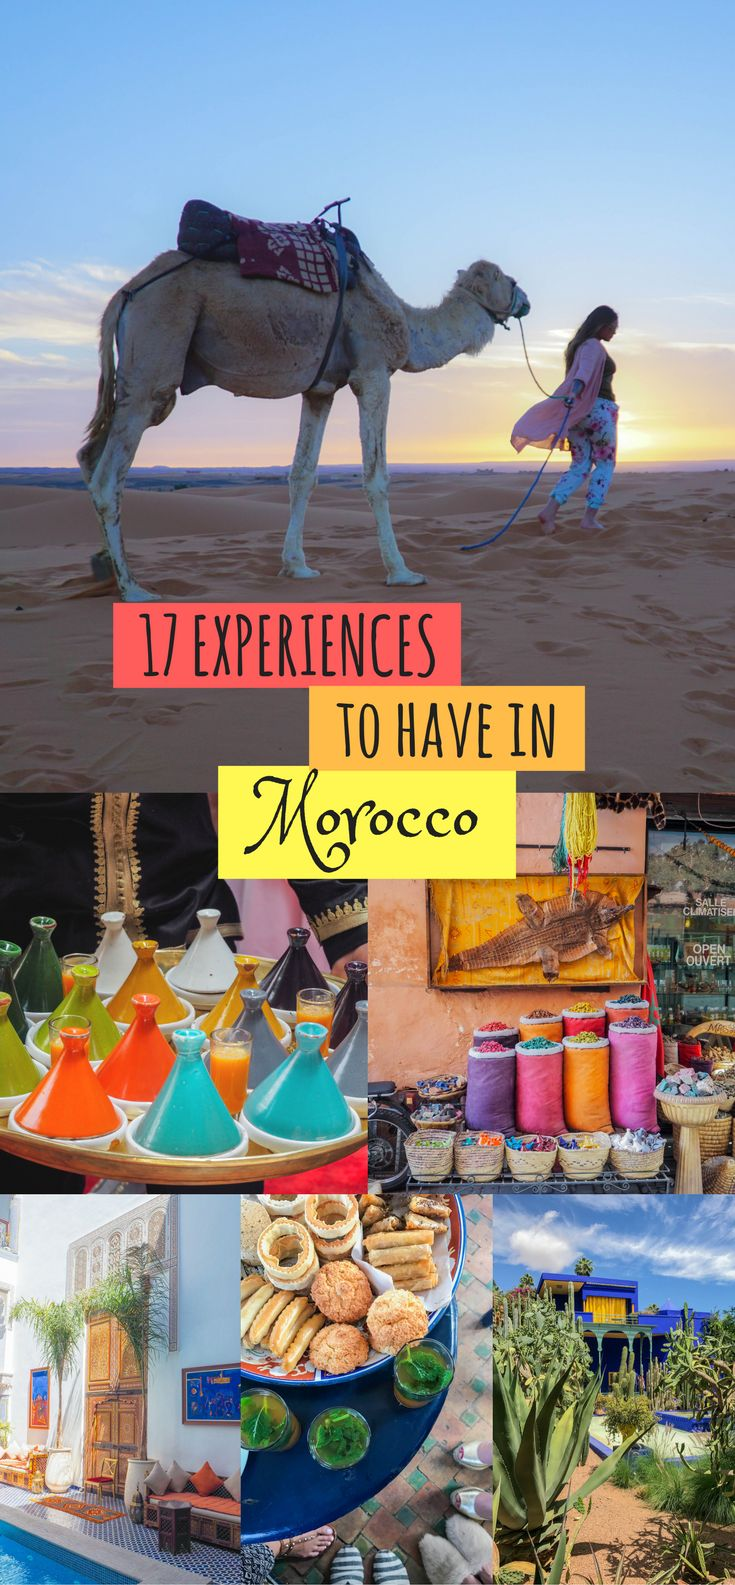 17 Experiences to have in Morocco | Things to do in Morocco | Morocco Bucket List | What to do in Morocco | Moroccan Experiences | The intoxicating aromas of cumin and mint lingering in the air, the echo of the call to prayer cascading over the cities, the melody of French, Arabic, Berber and Spanish (all from the mouths of locals) harmonizing as if they were one language… simply walking the streets of any city in Morocco is an experience in itself...